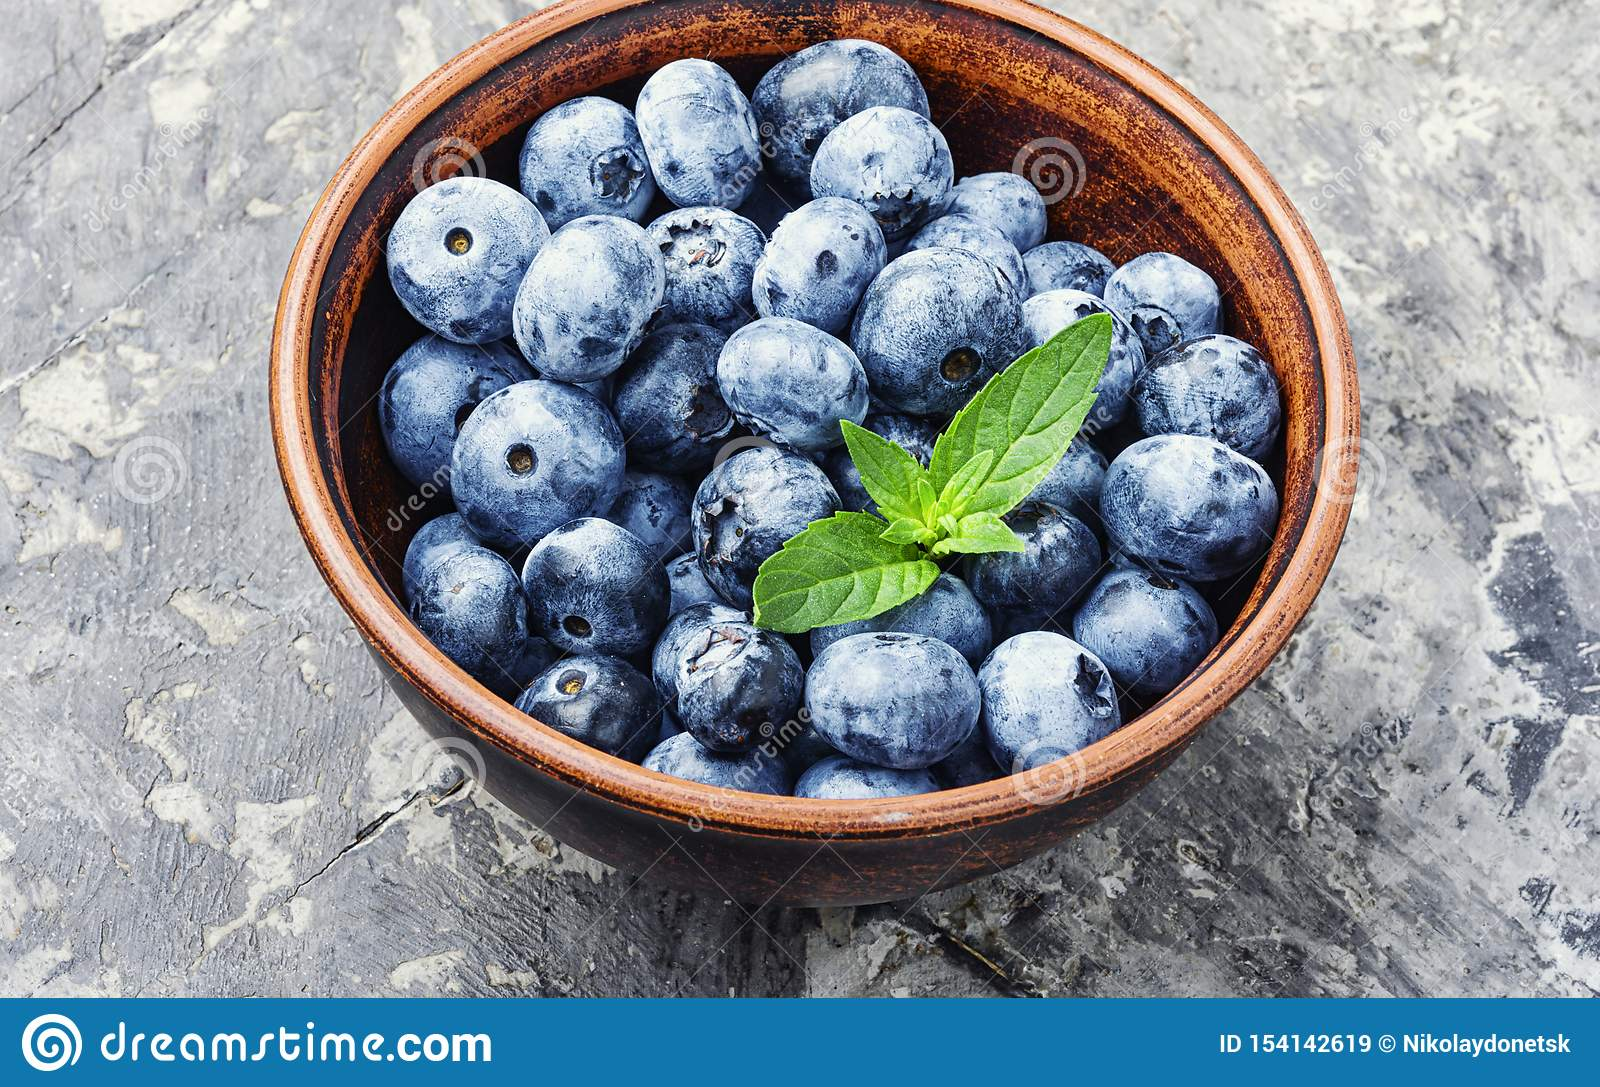 Berries Blueberries Or Bilberry Stock Image - Image of ...